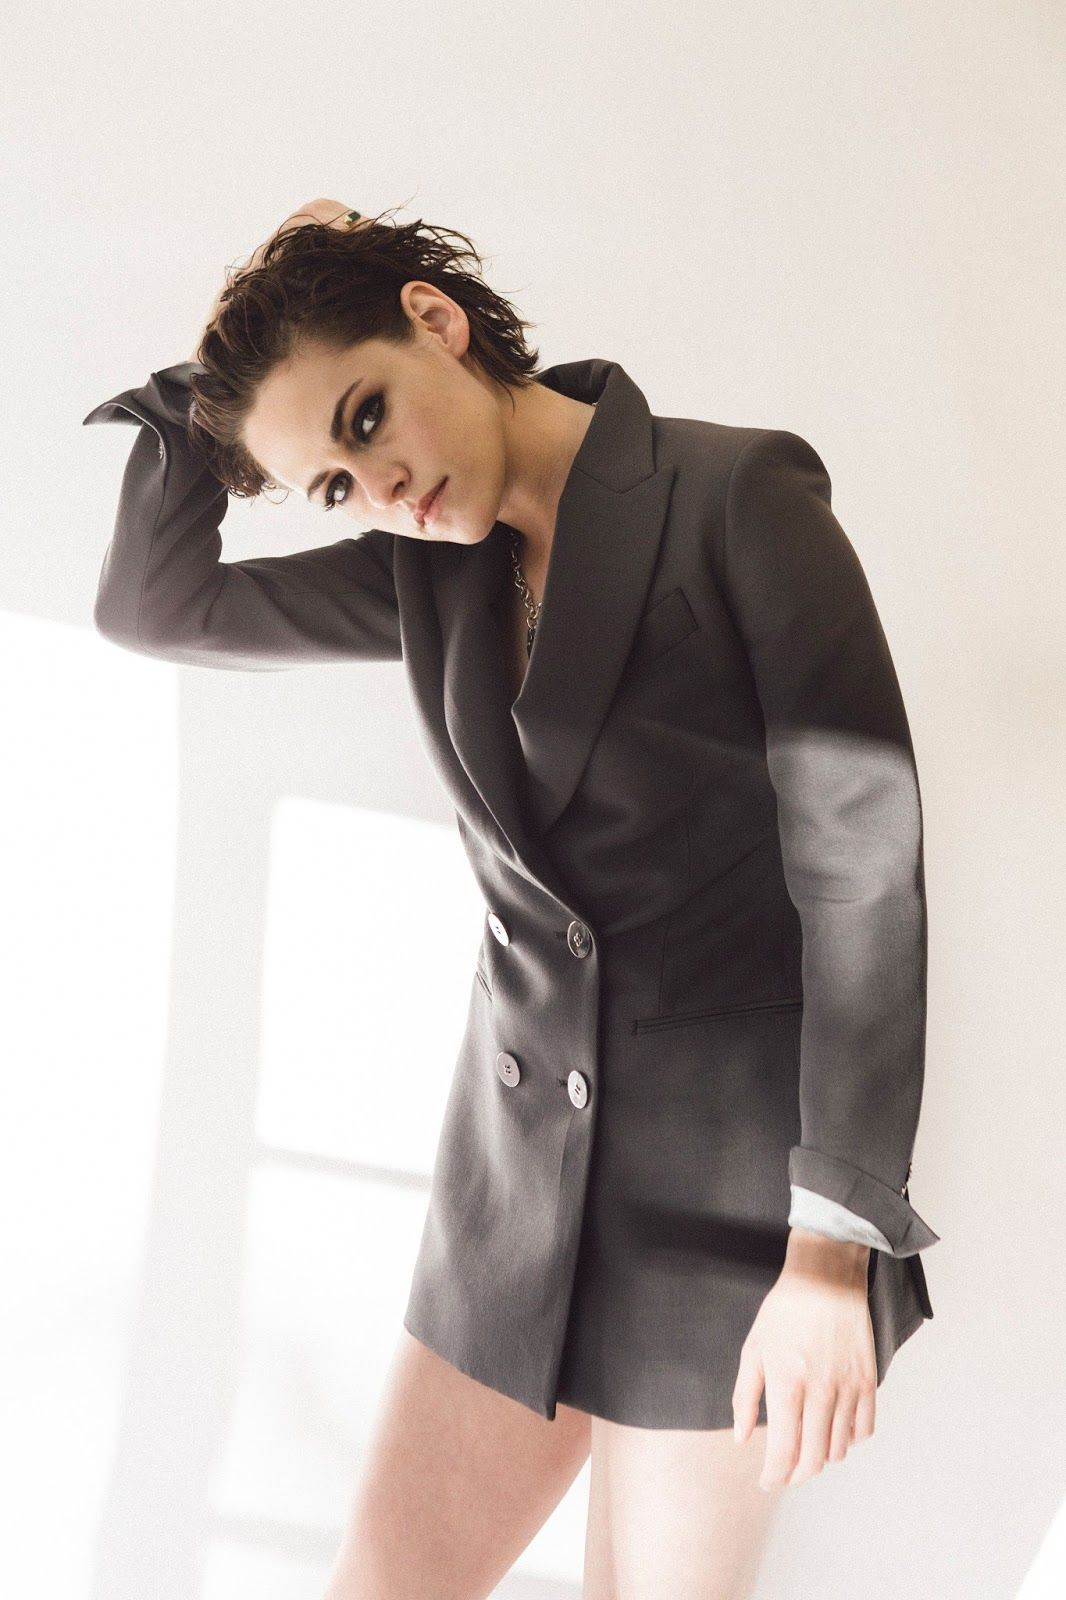 New+Old+Kristen+Stewart+New+York+Times+2017+Photoshoot